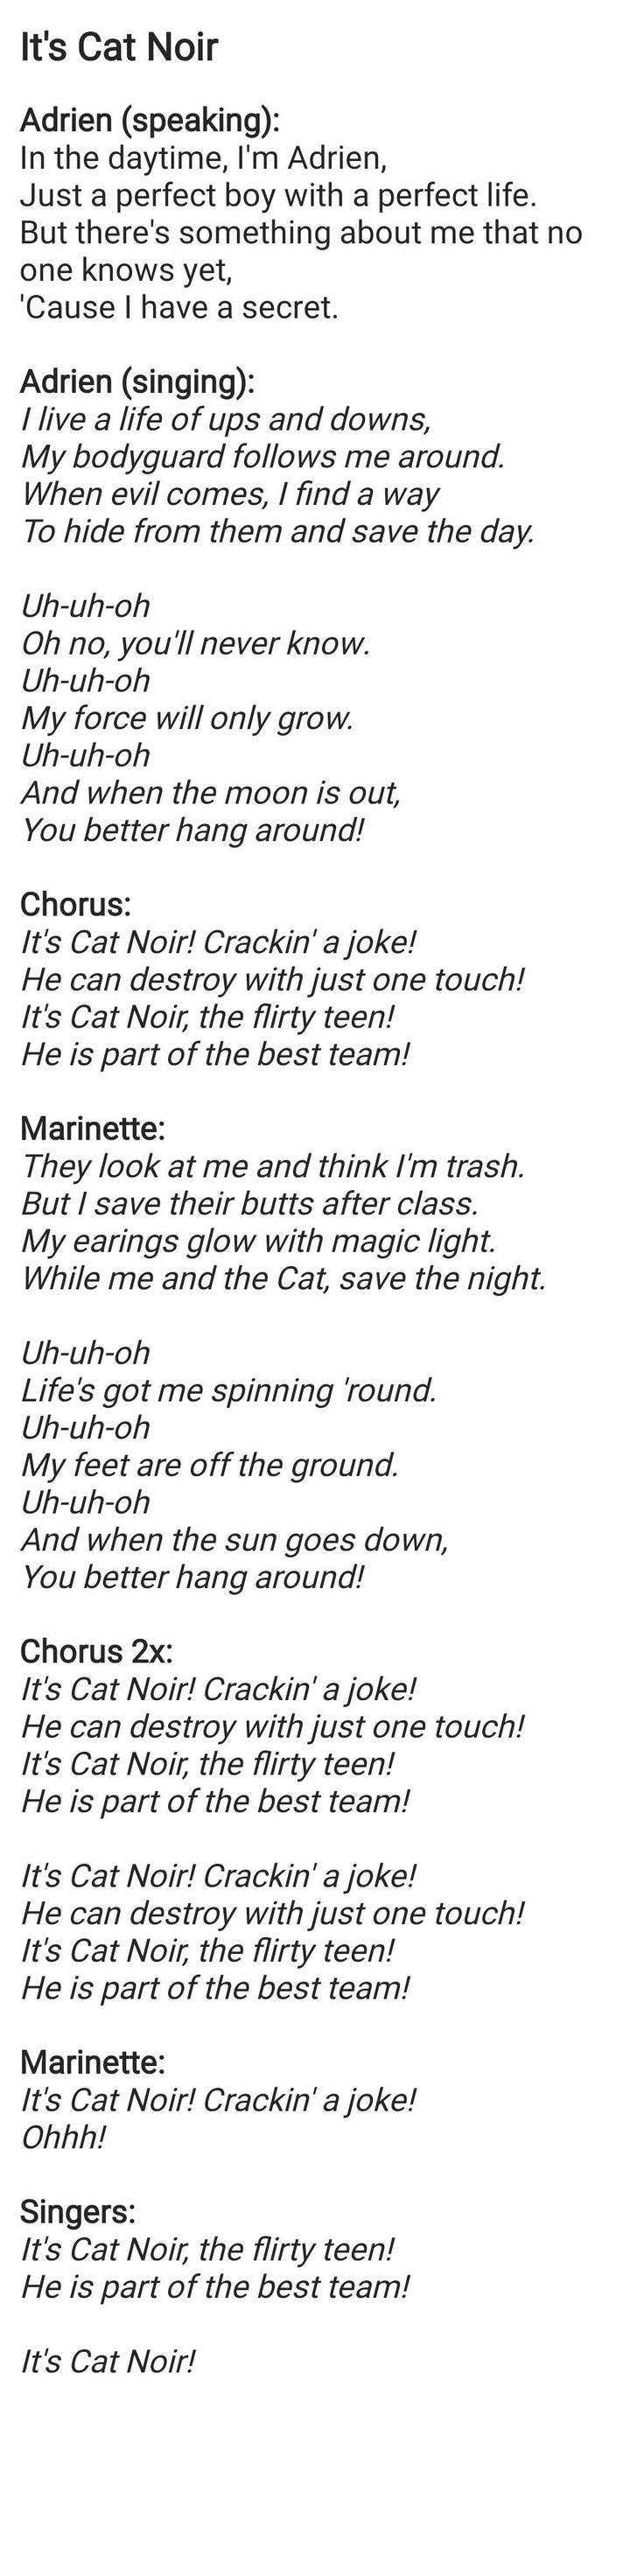 "Adriens Song (Part one of 2) Miraculous Ladybug It's Ladybug>It's Cat Noir (In Marinette's line ""...think I'm trash, But I save..."" Is referring mostly to Chloe. Most other characters love Marinette. THIS LINE IS MEANT TO BE A JOKE ABOUT CHLOE'S LOVE FOR LB/ HATE FOR MARI)"